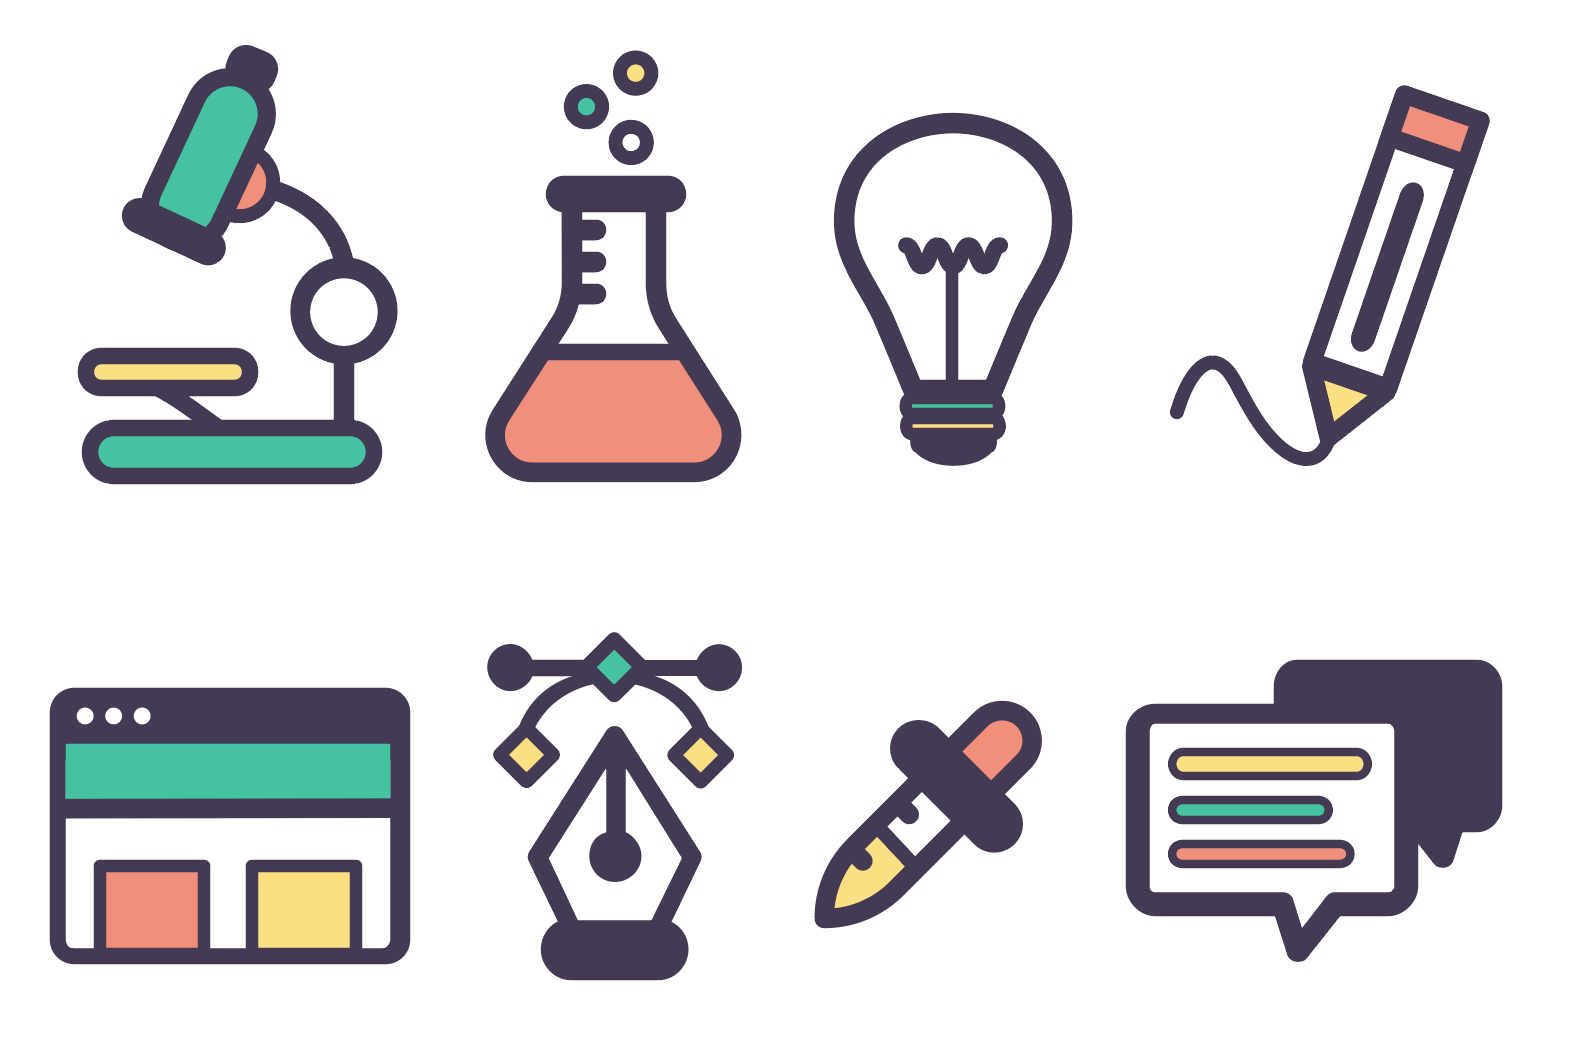 Illustrations of icons representing various design tasks